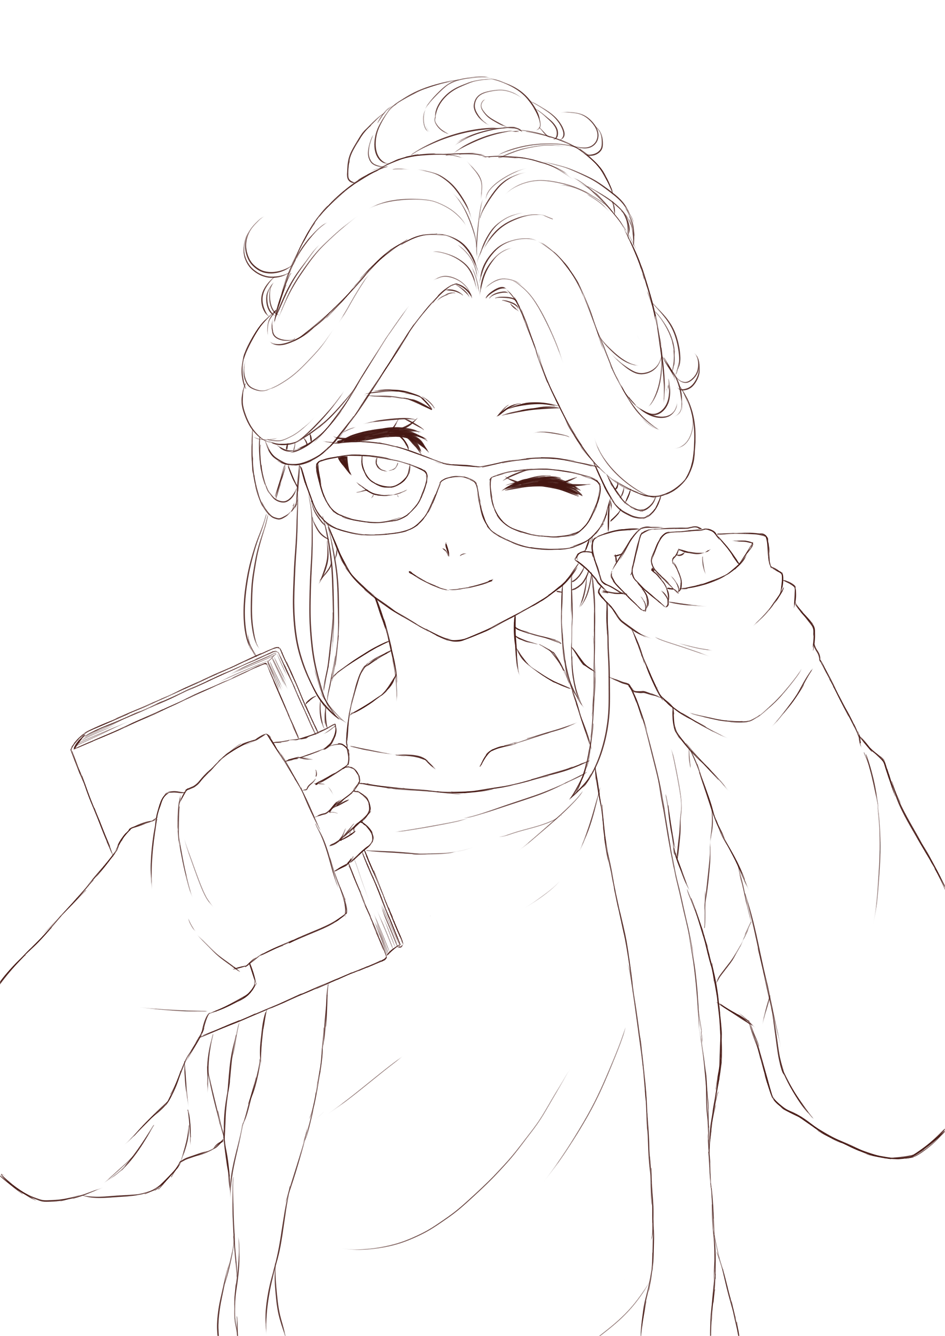 945x1336 Anime Lineart Transparent